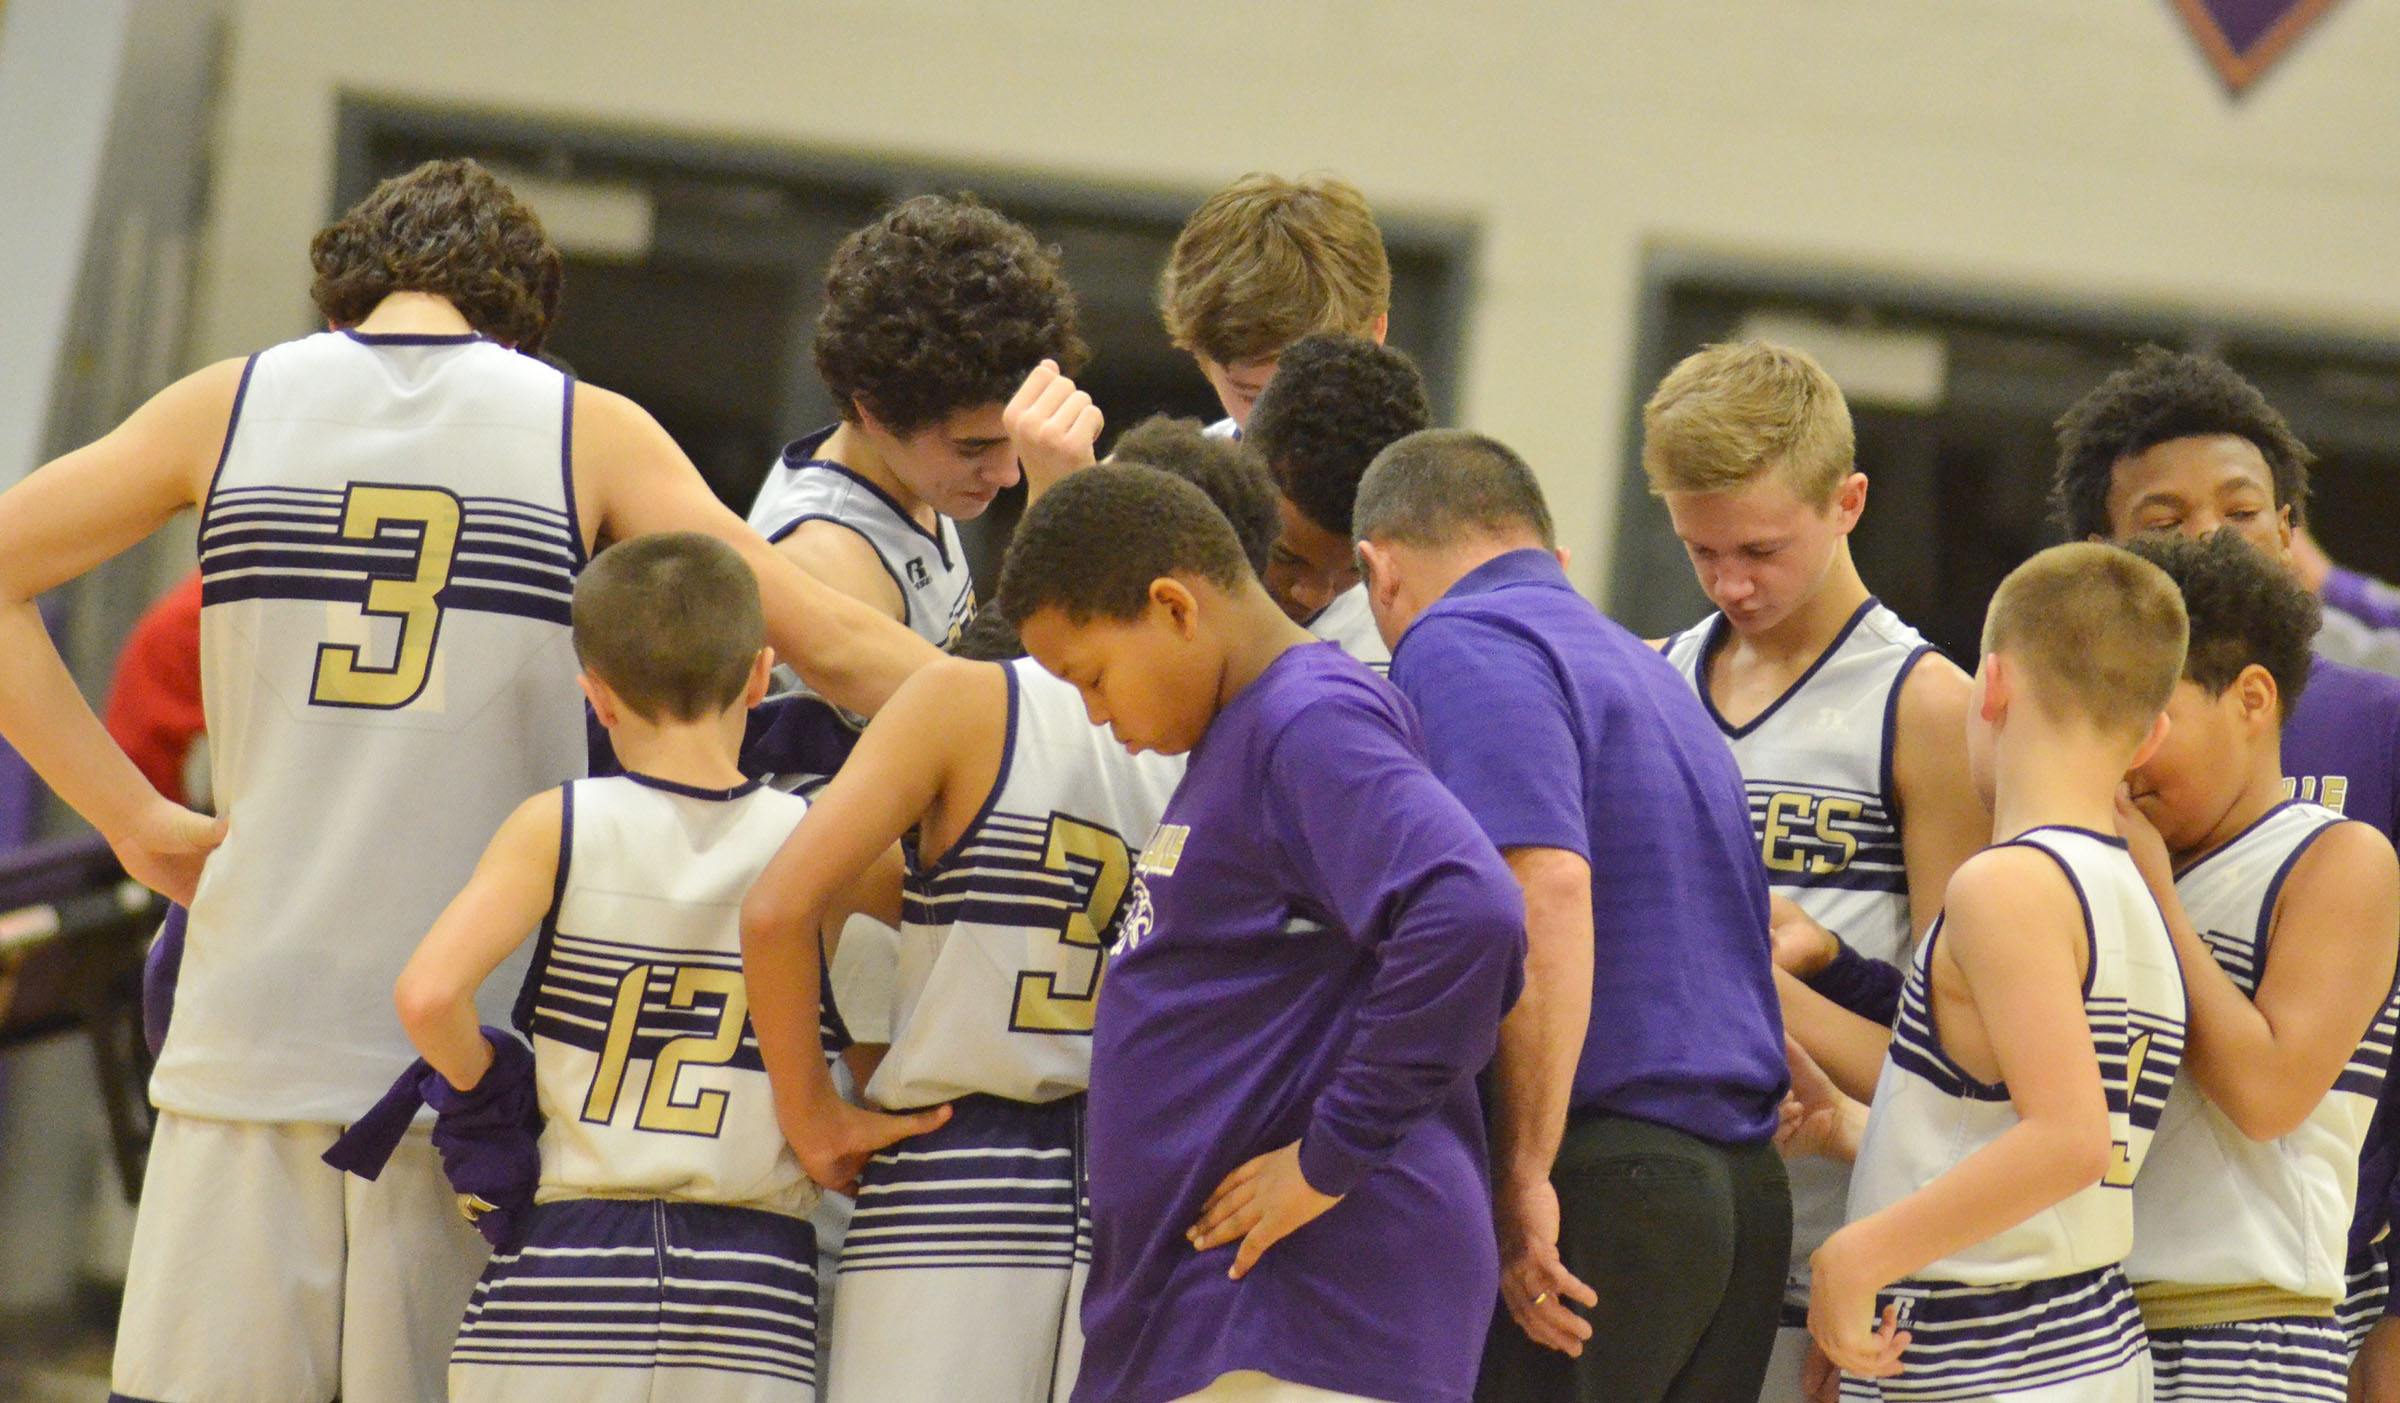 CMS boys' basketball players pray together after their games.